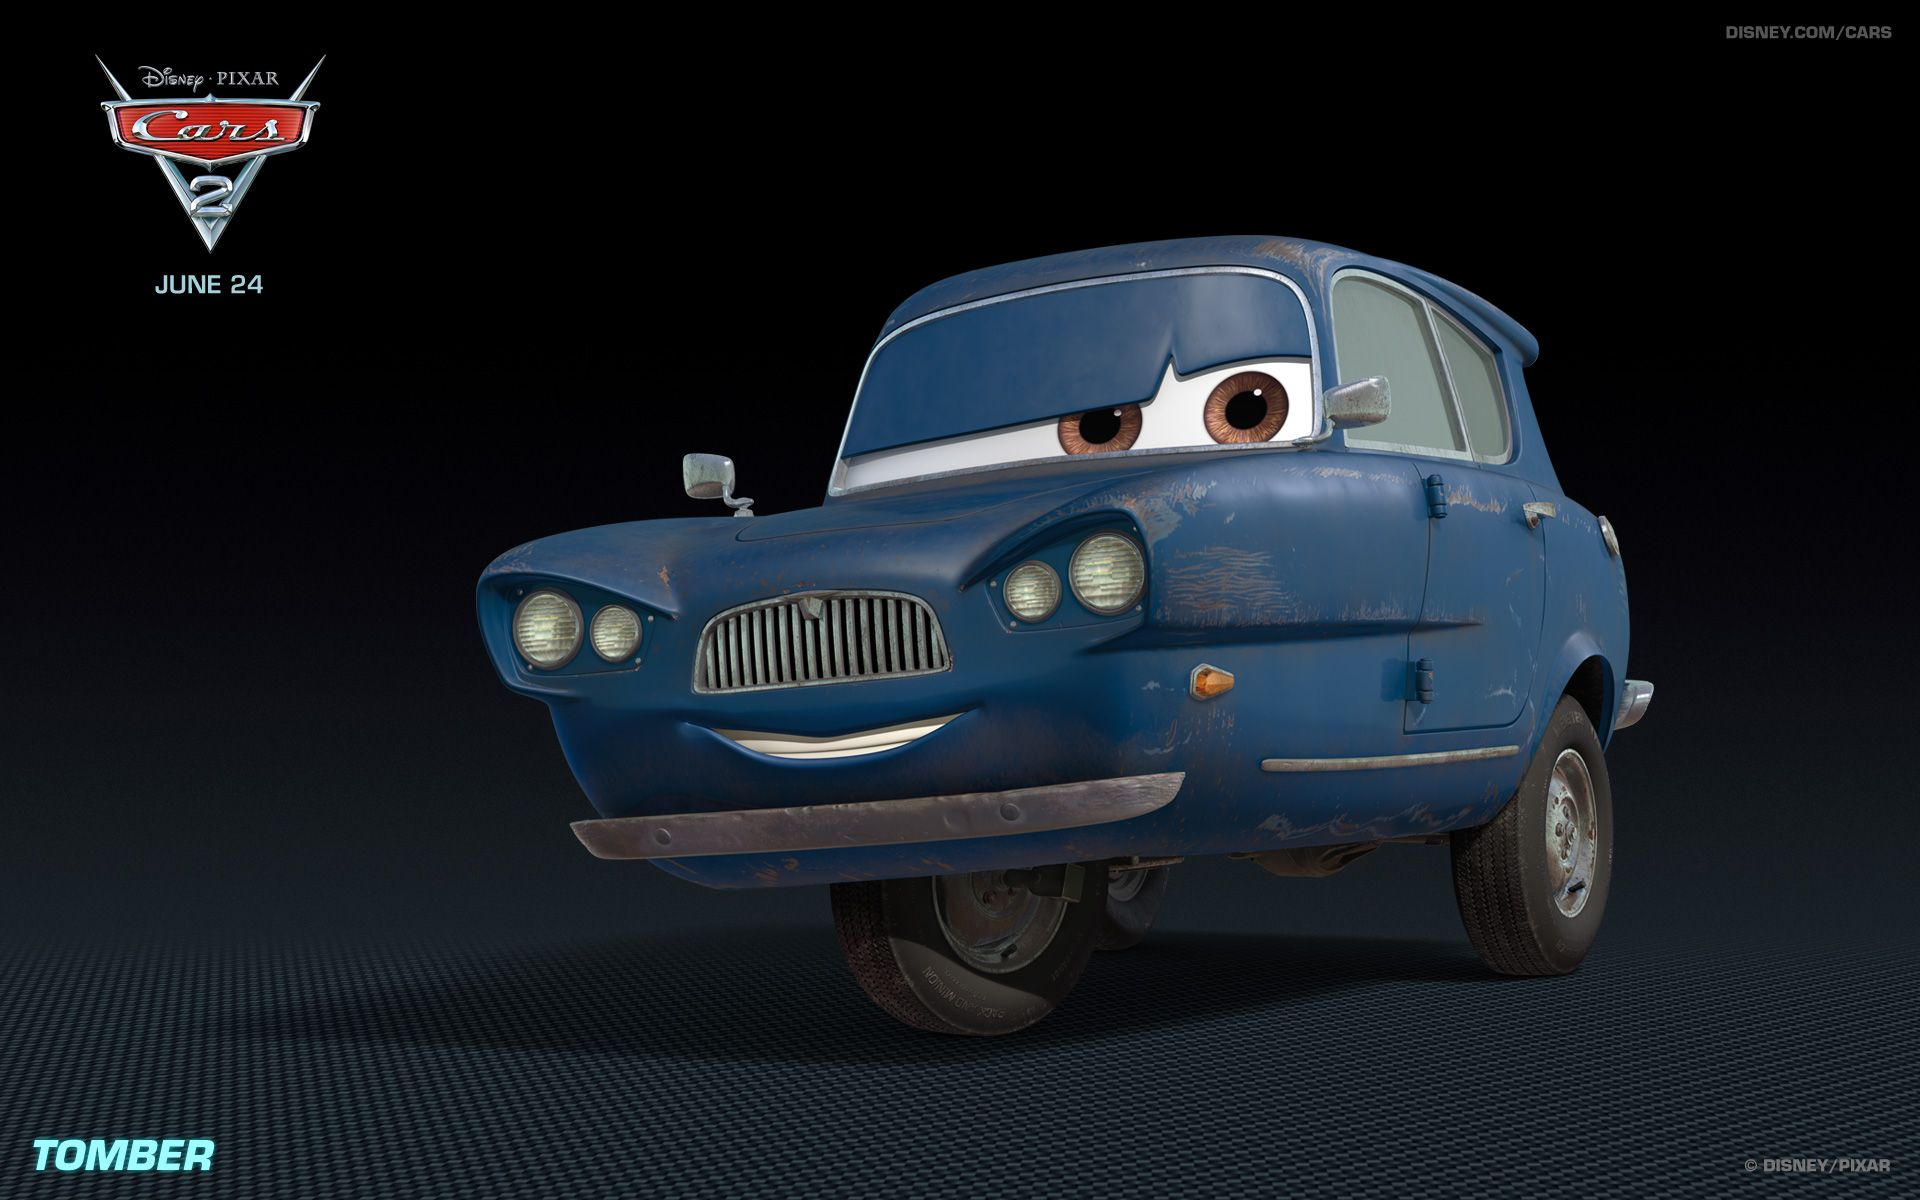 Guido luigi s mostly silent sidekick guido is based on a 1950s isetta forklift the stars from the movie cars pinterest movie cars and cars